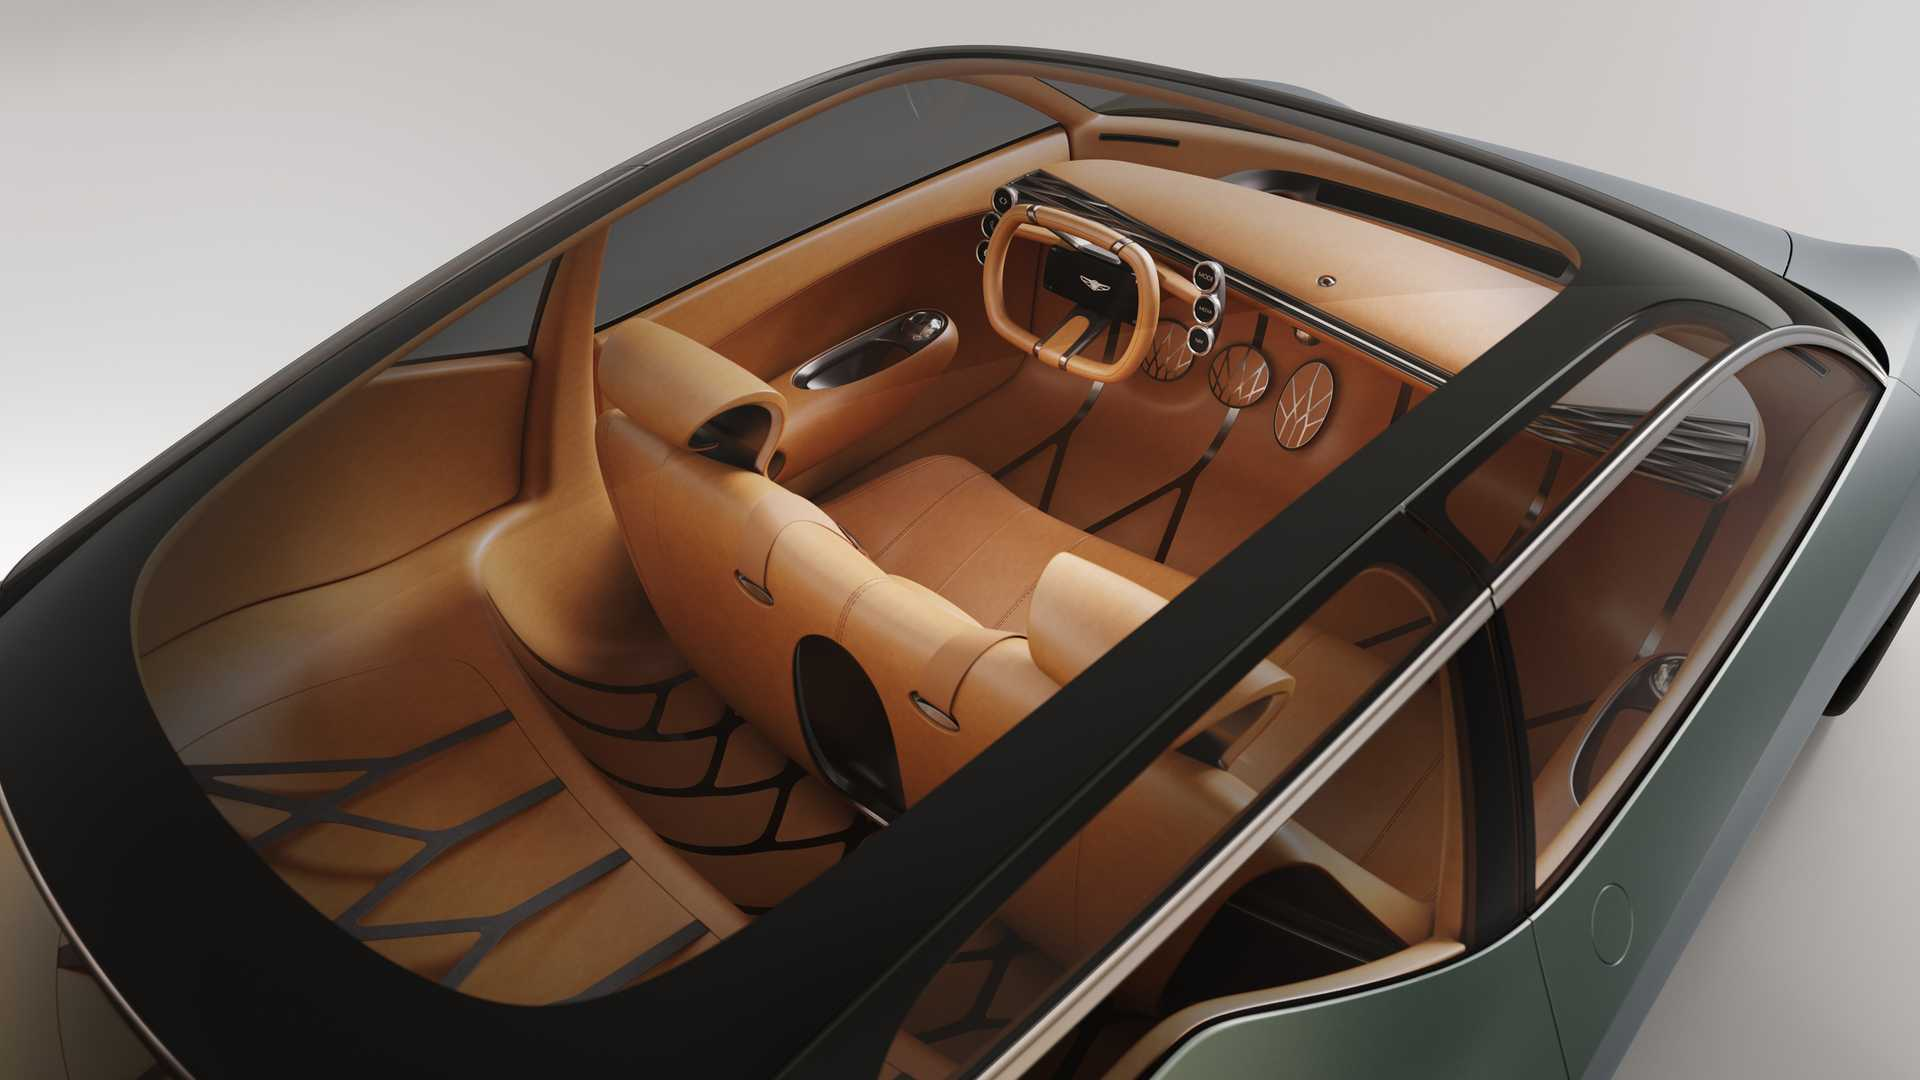 Genesis' latest luxury electric auto concept is Mint